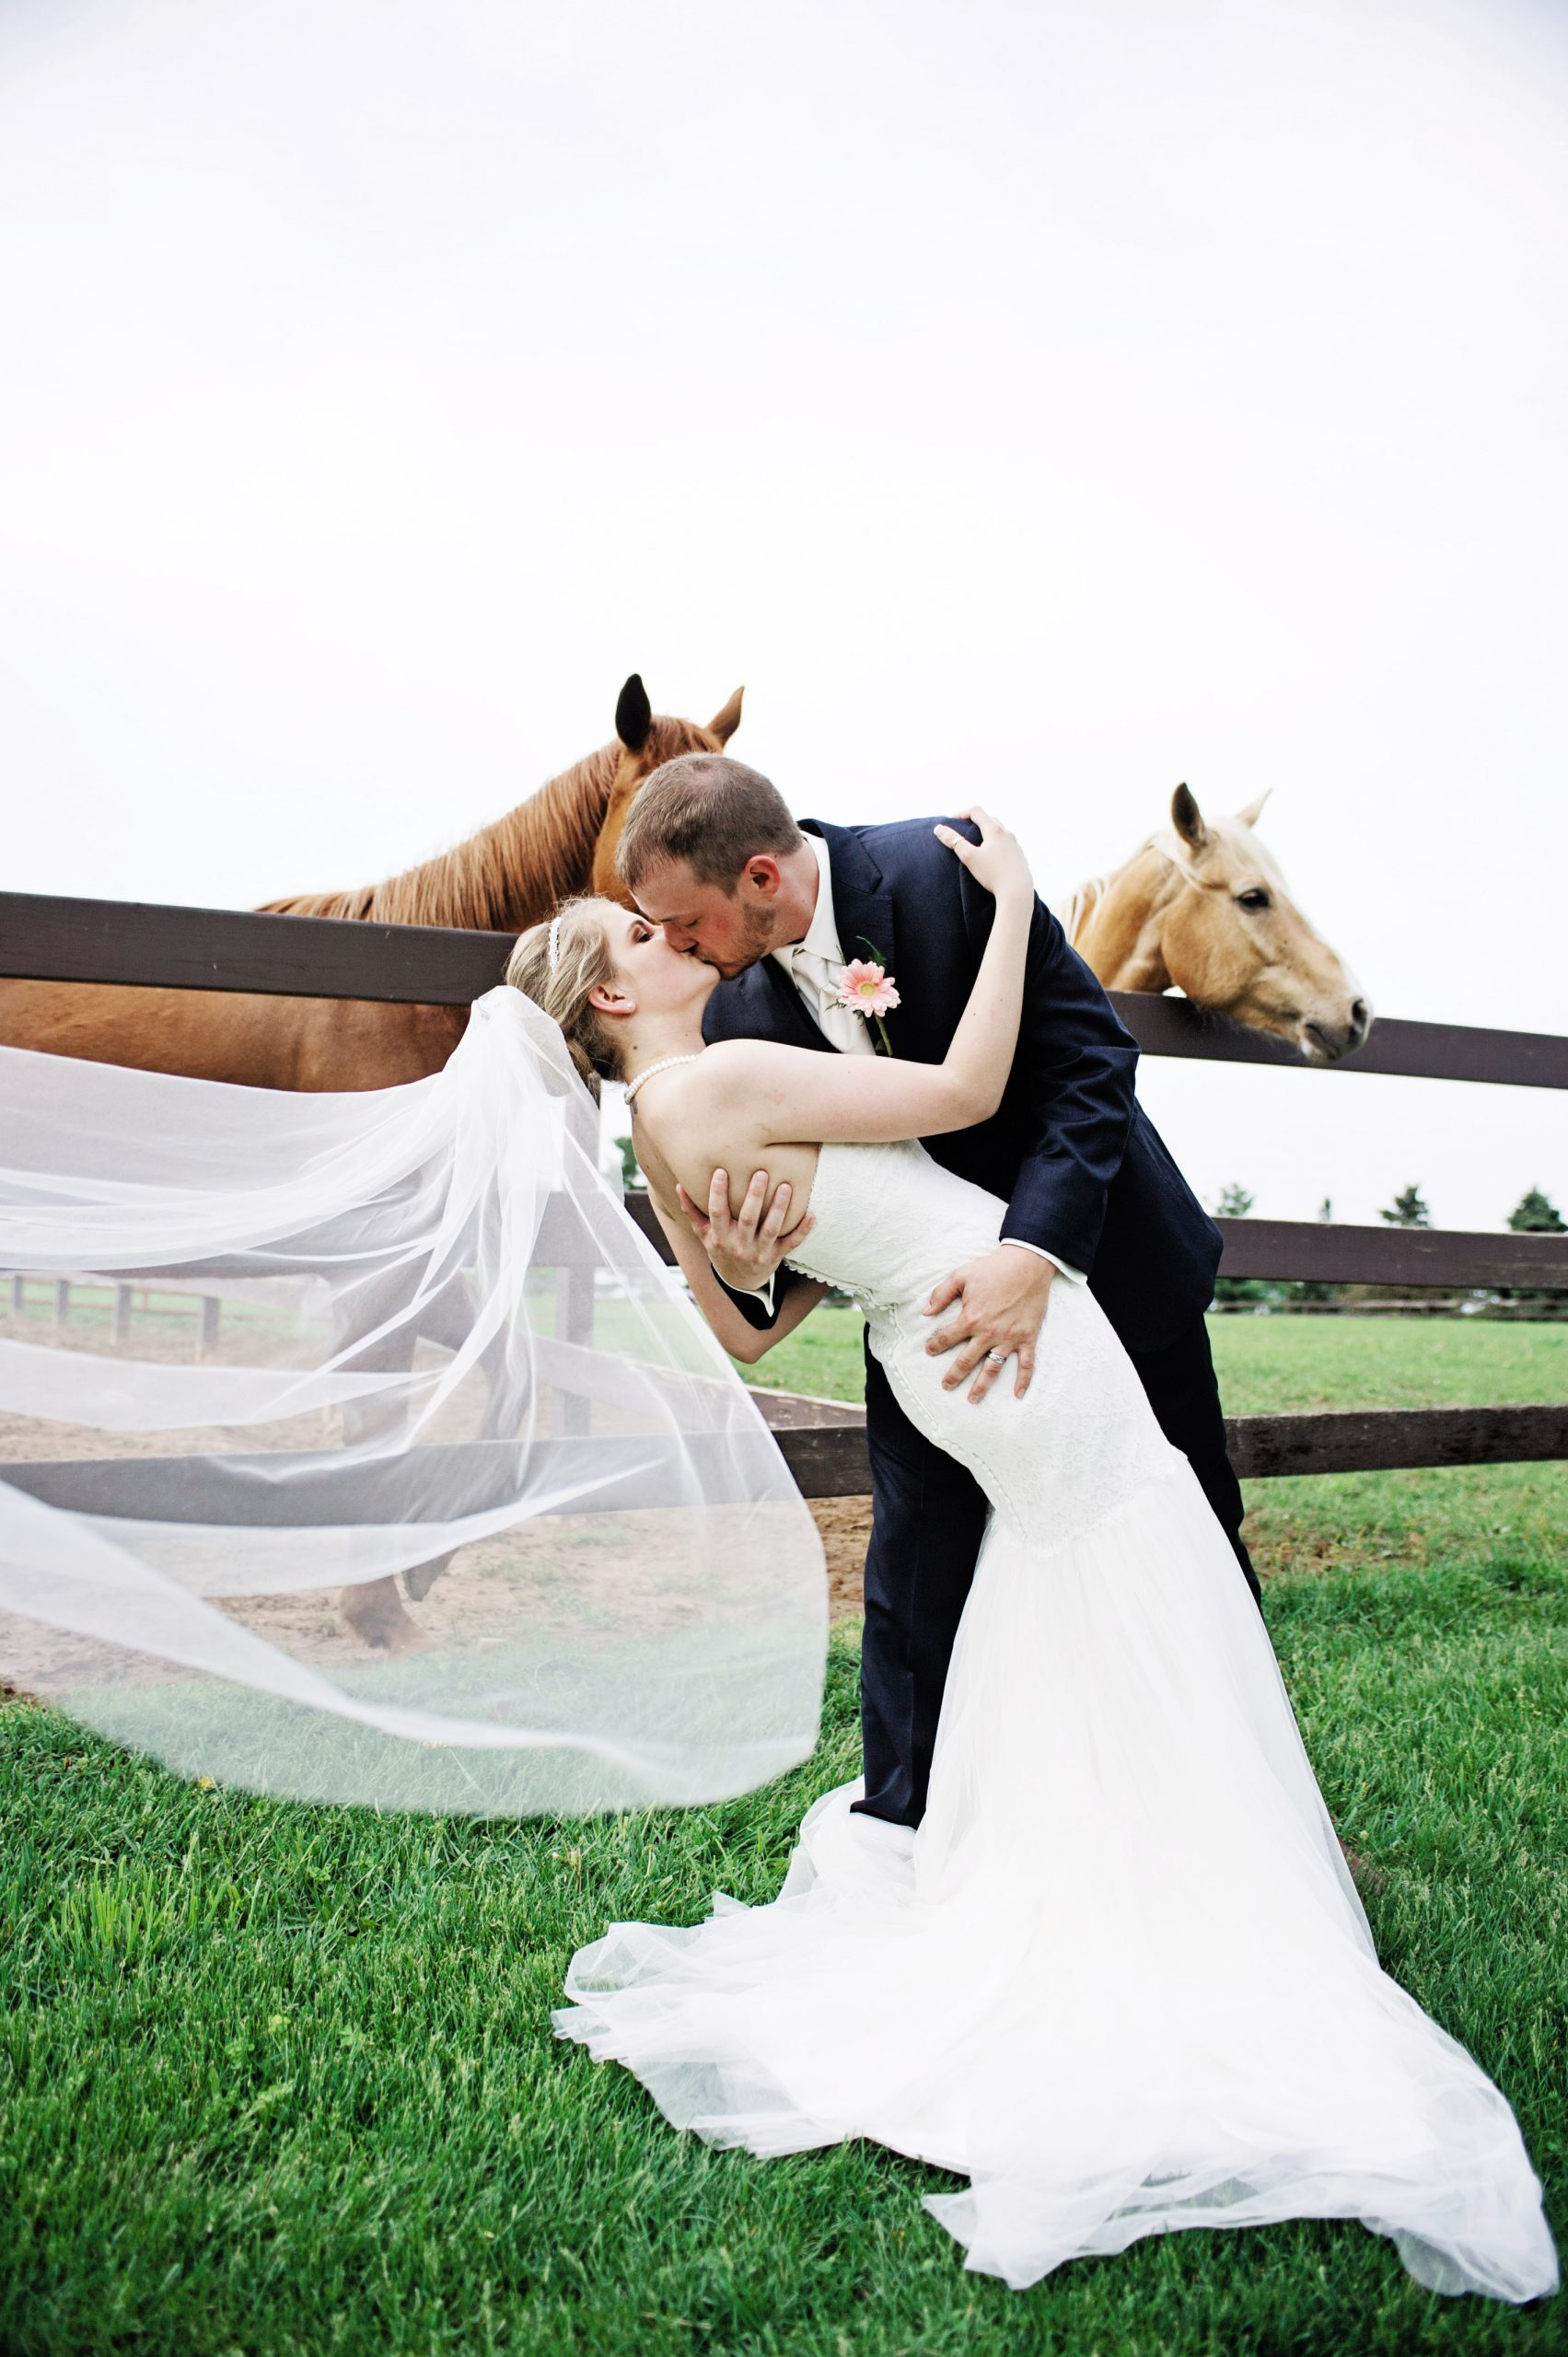 Veil flowing in the breeze, Lovefusion Photography captures a warm embrace of bride and groom at Lakeview Farms, in York, PA. Featured on Dream Weddings.